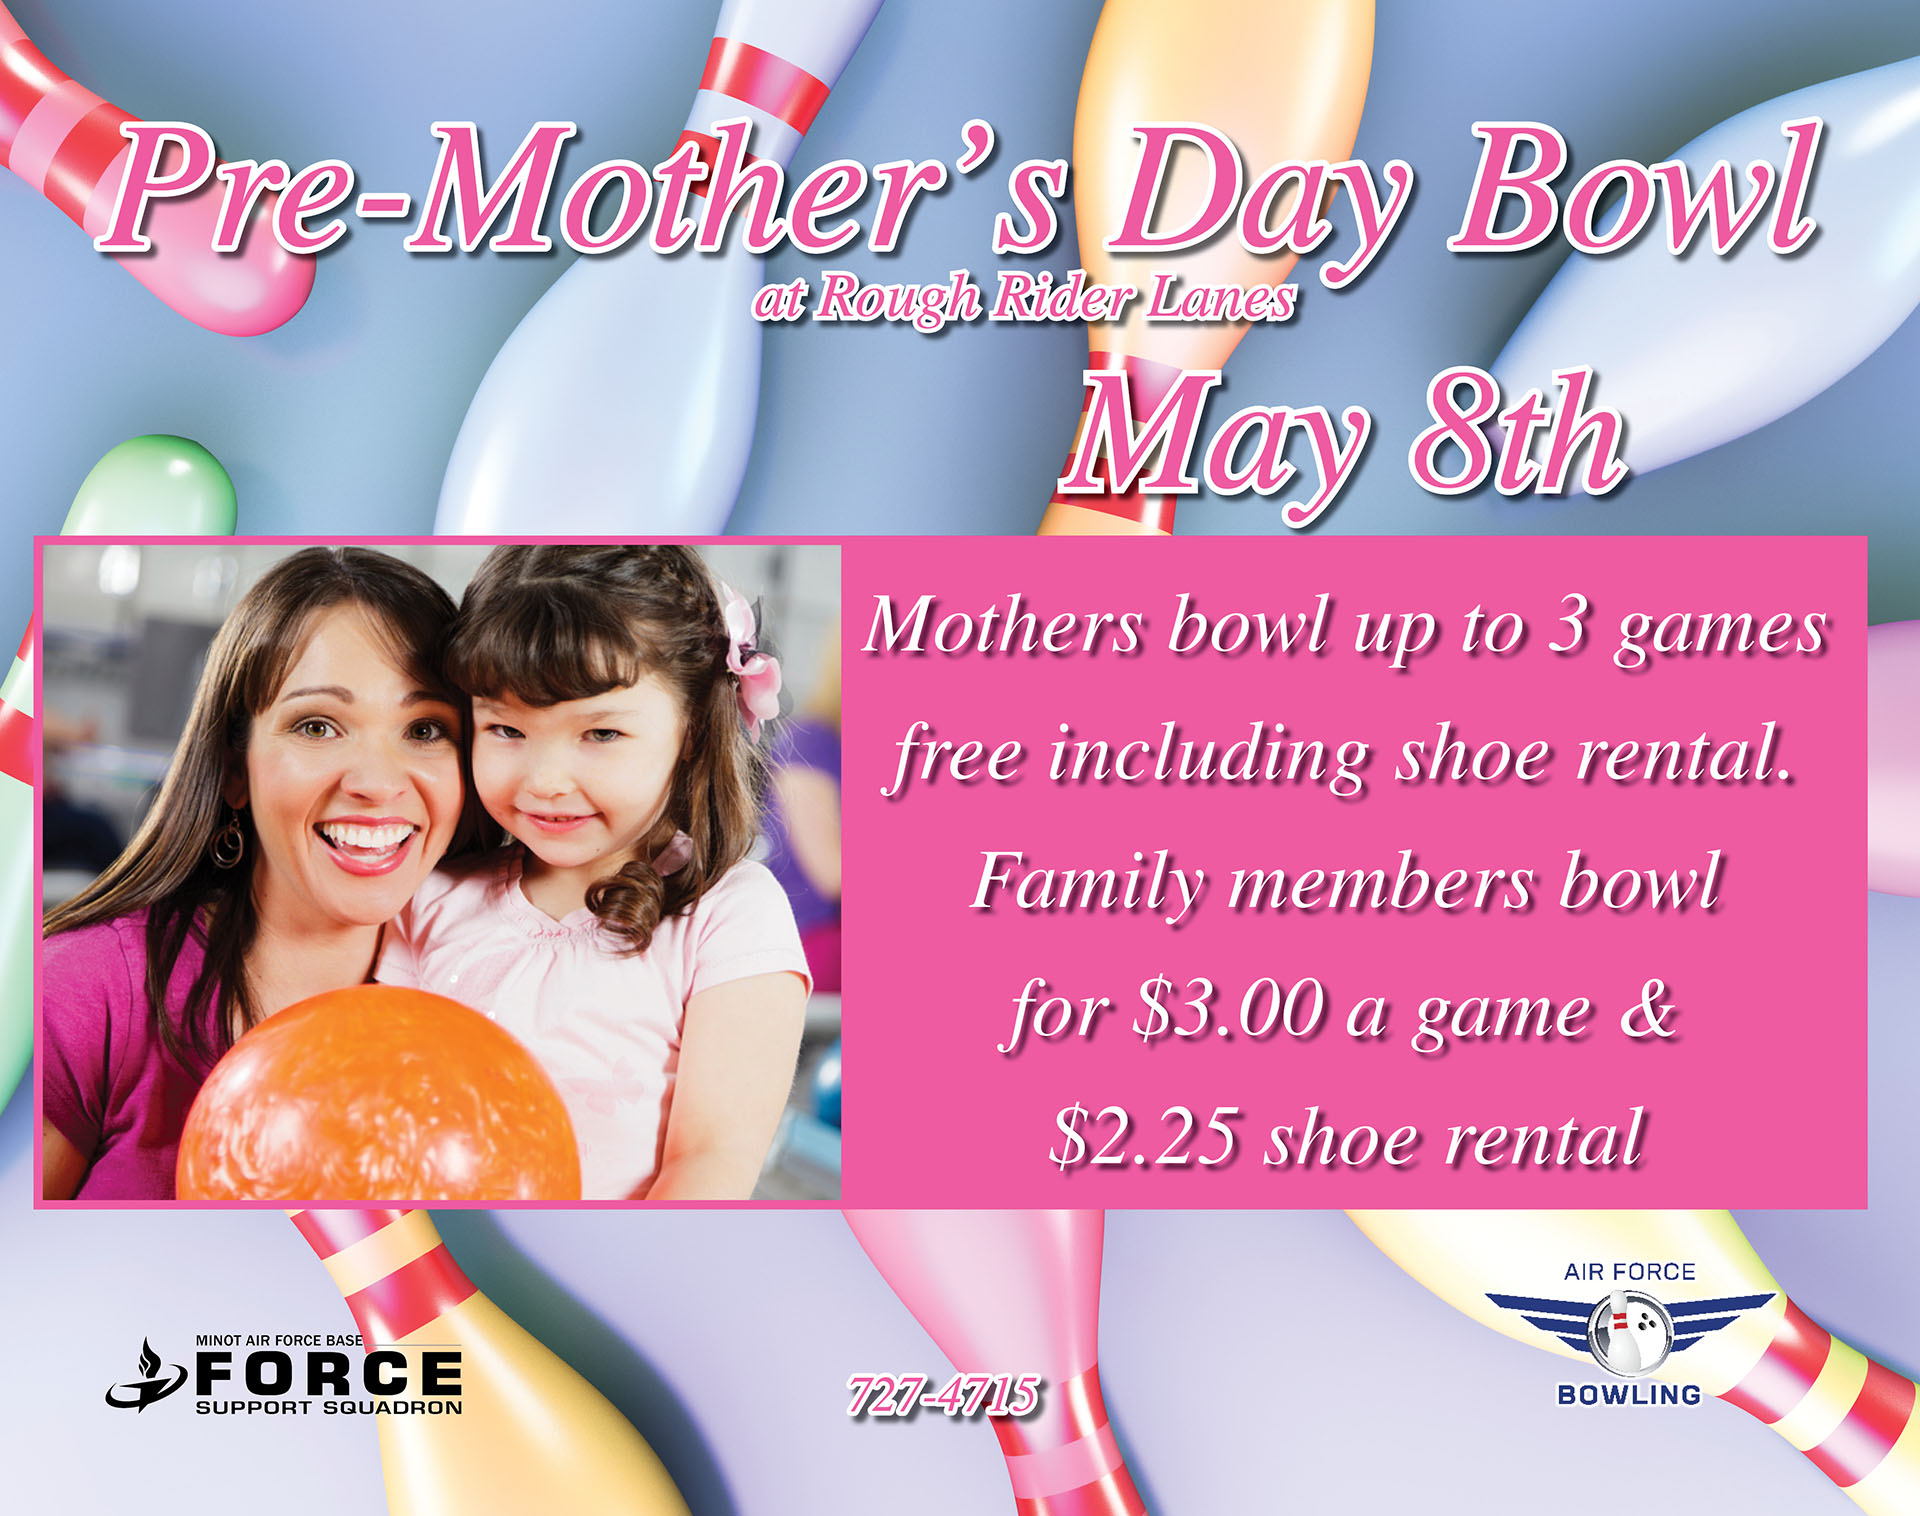 Pre-Mother's Day Bowling Special